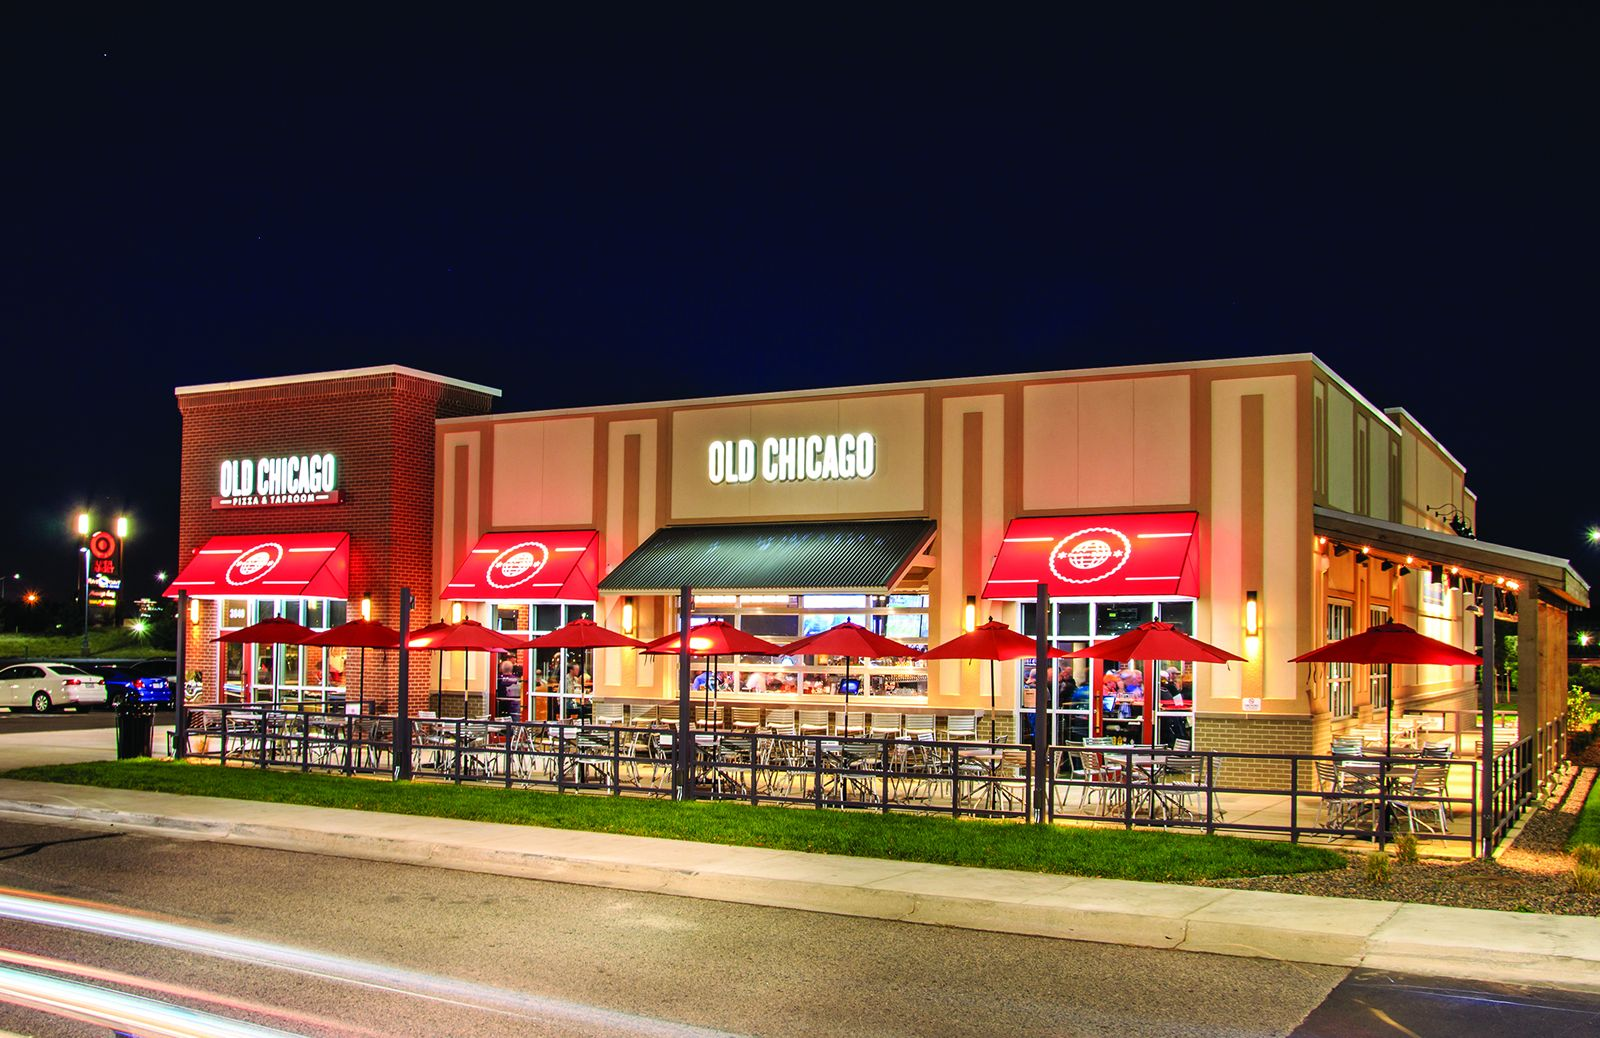 New Franchise Expansion Deals Brings New Old Chicago Pizza